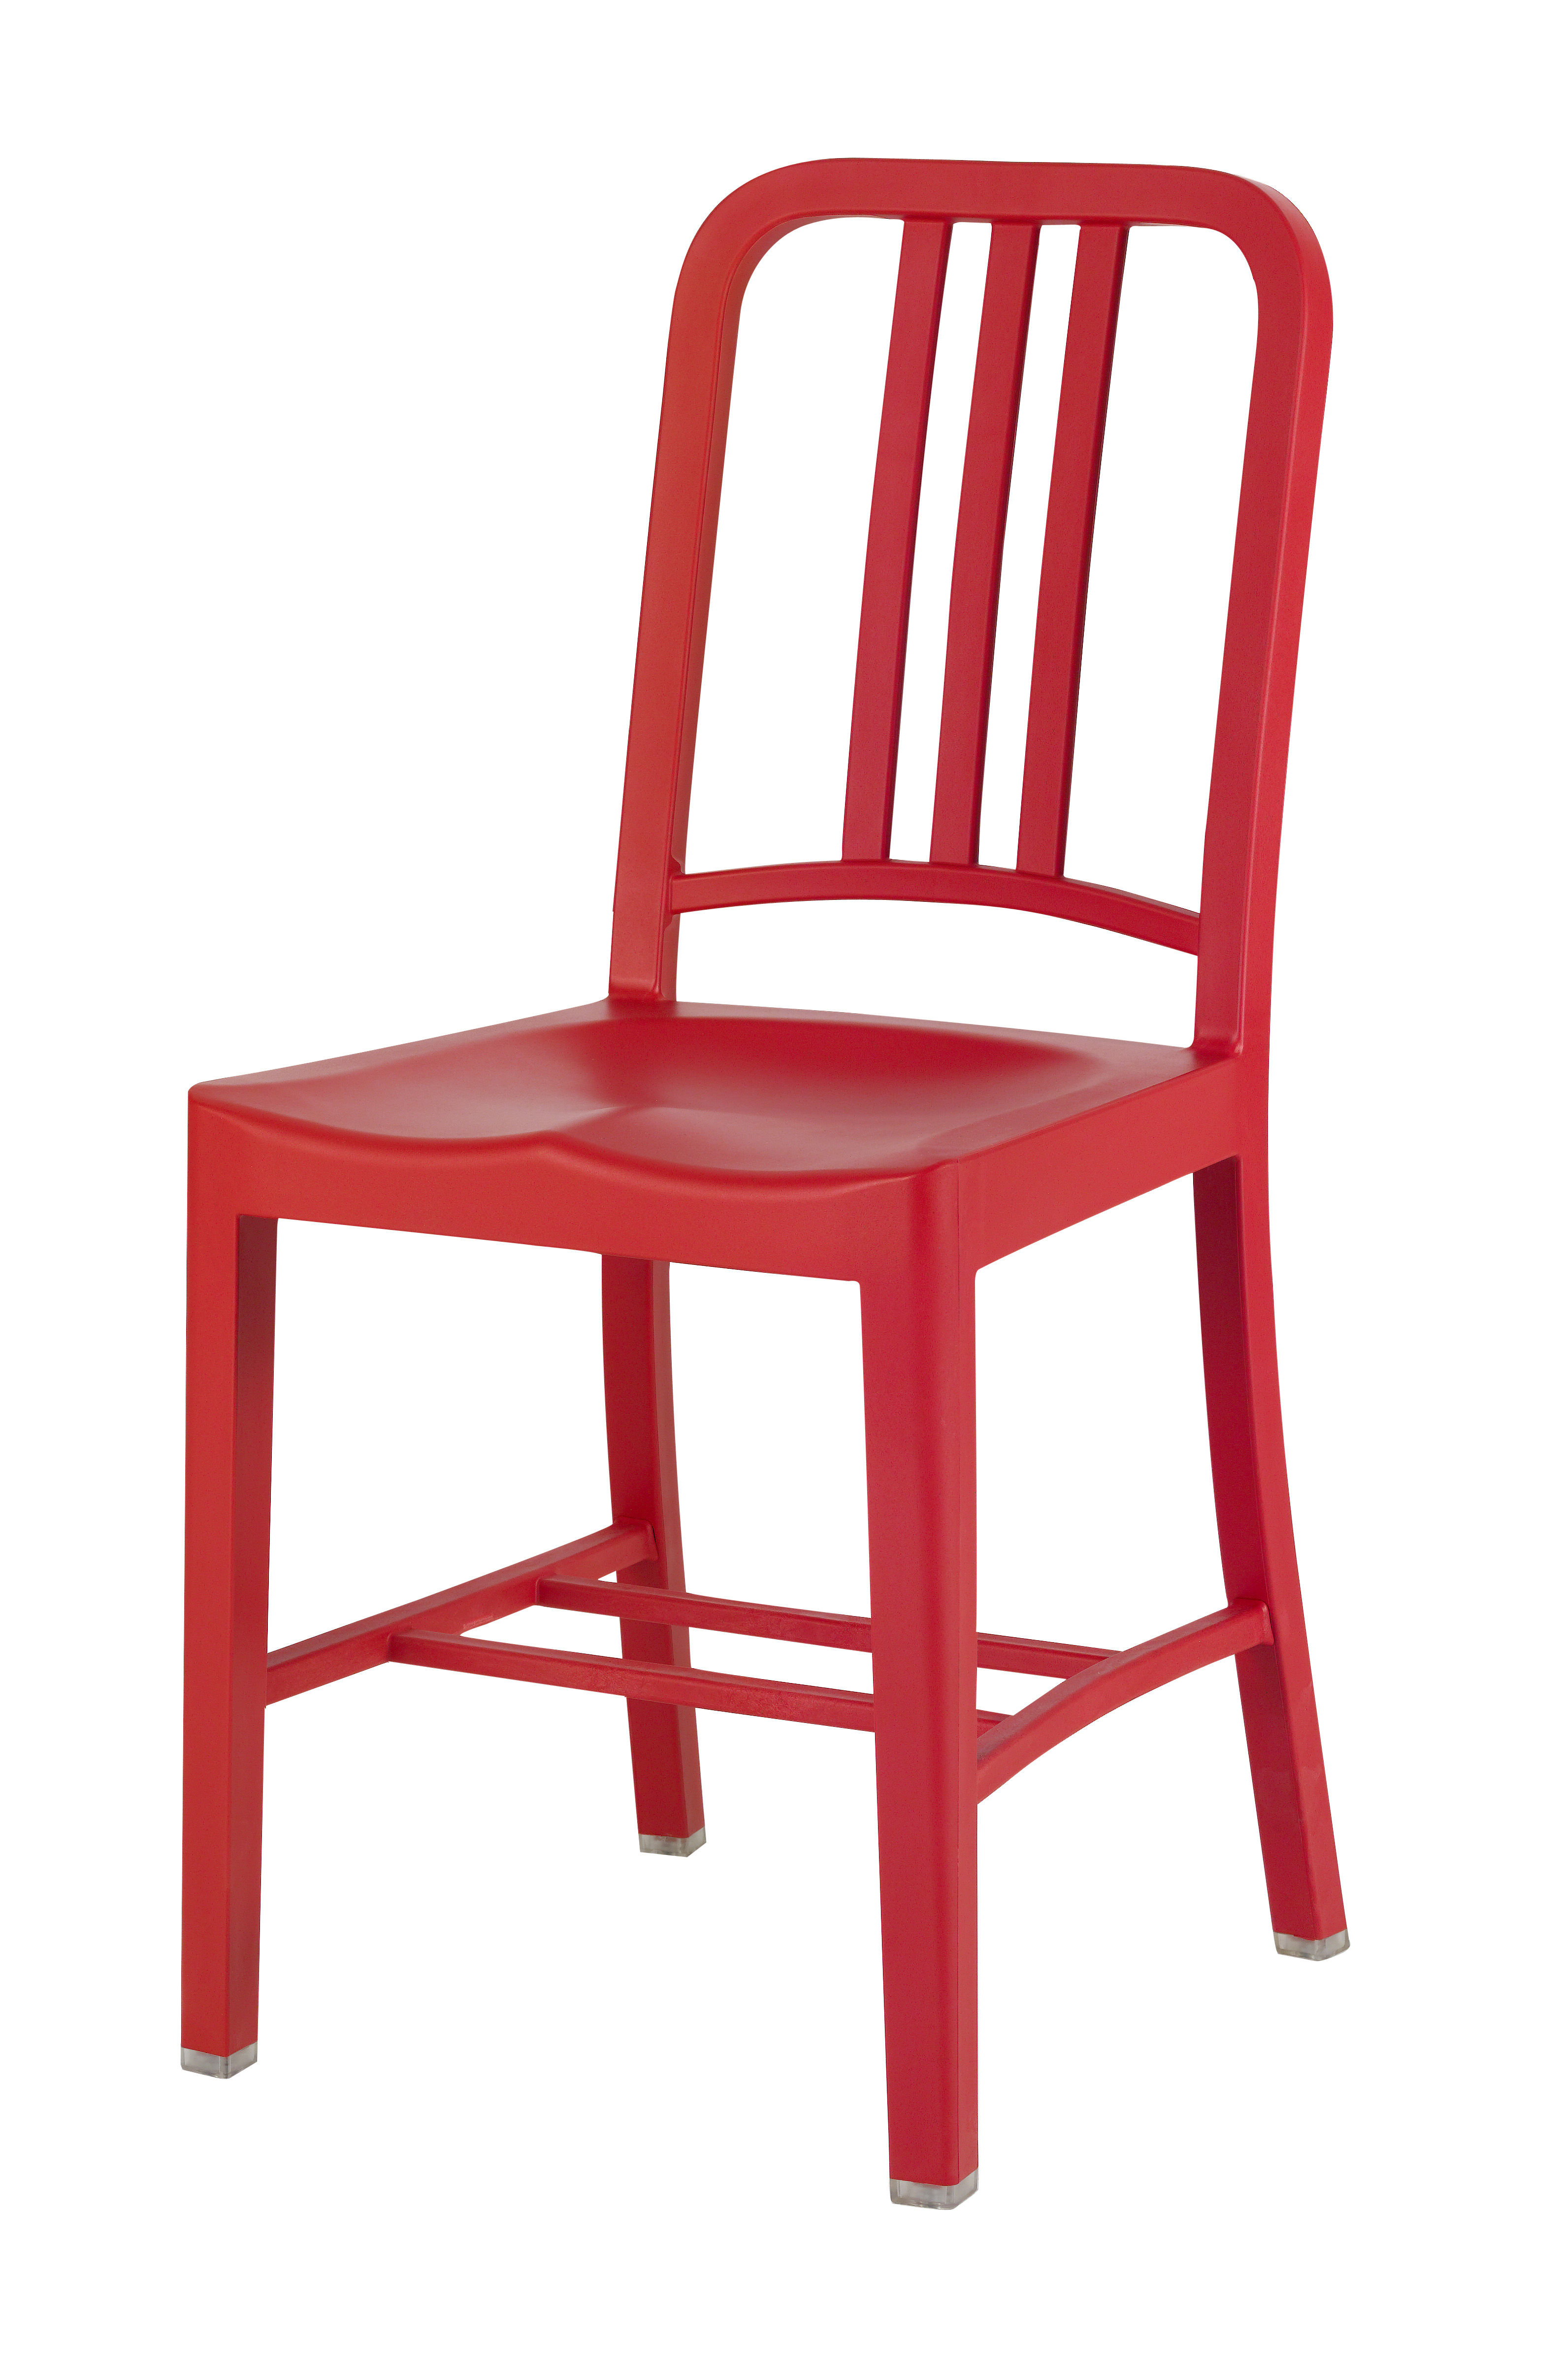 Furniture - Chairs - 111 Navy chair Chair - Recycled plastic by Emeco - Red - Fibreglass, PET